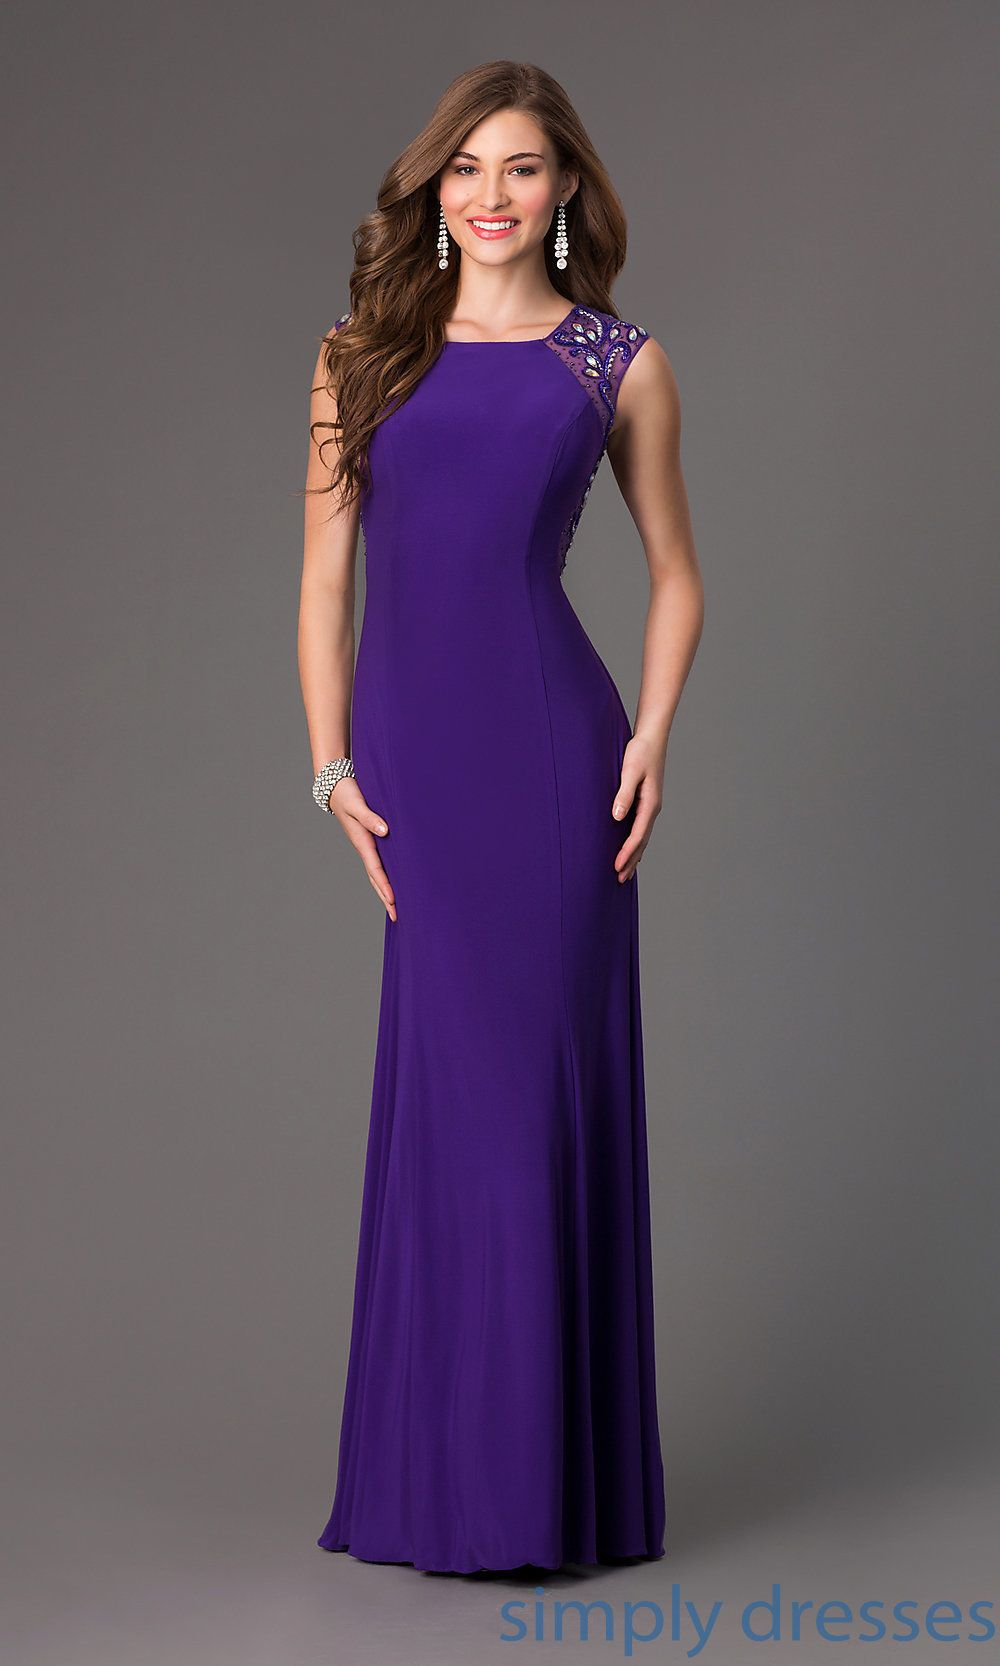 Long sleeveless formal gown with embellished sheer back pinterest